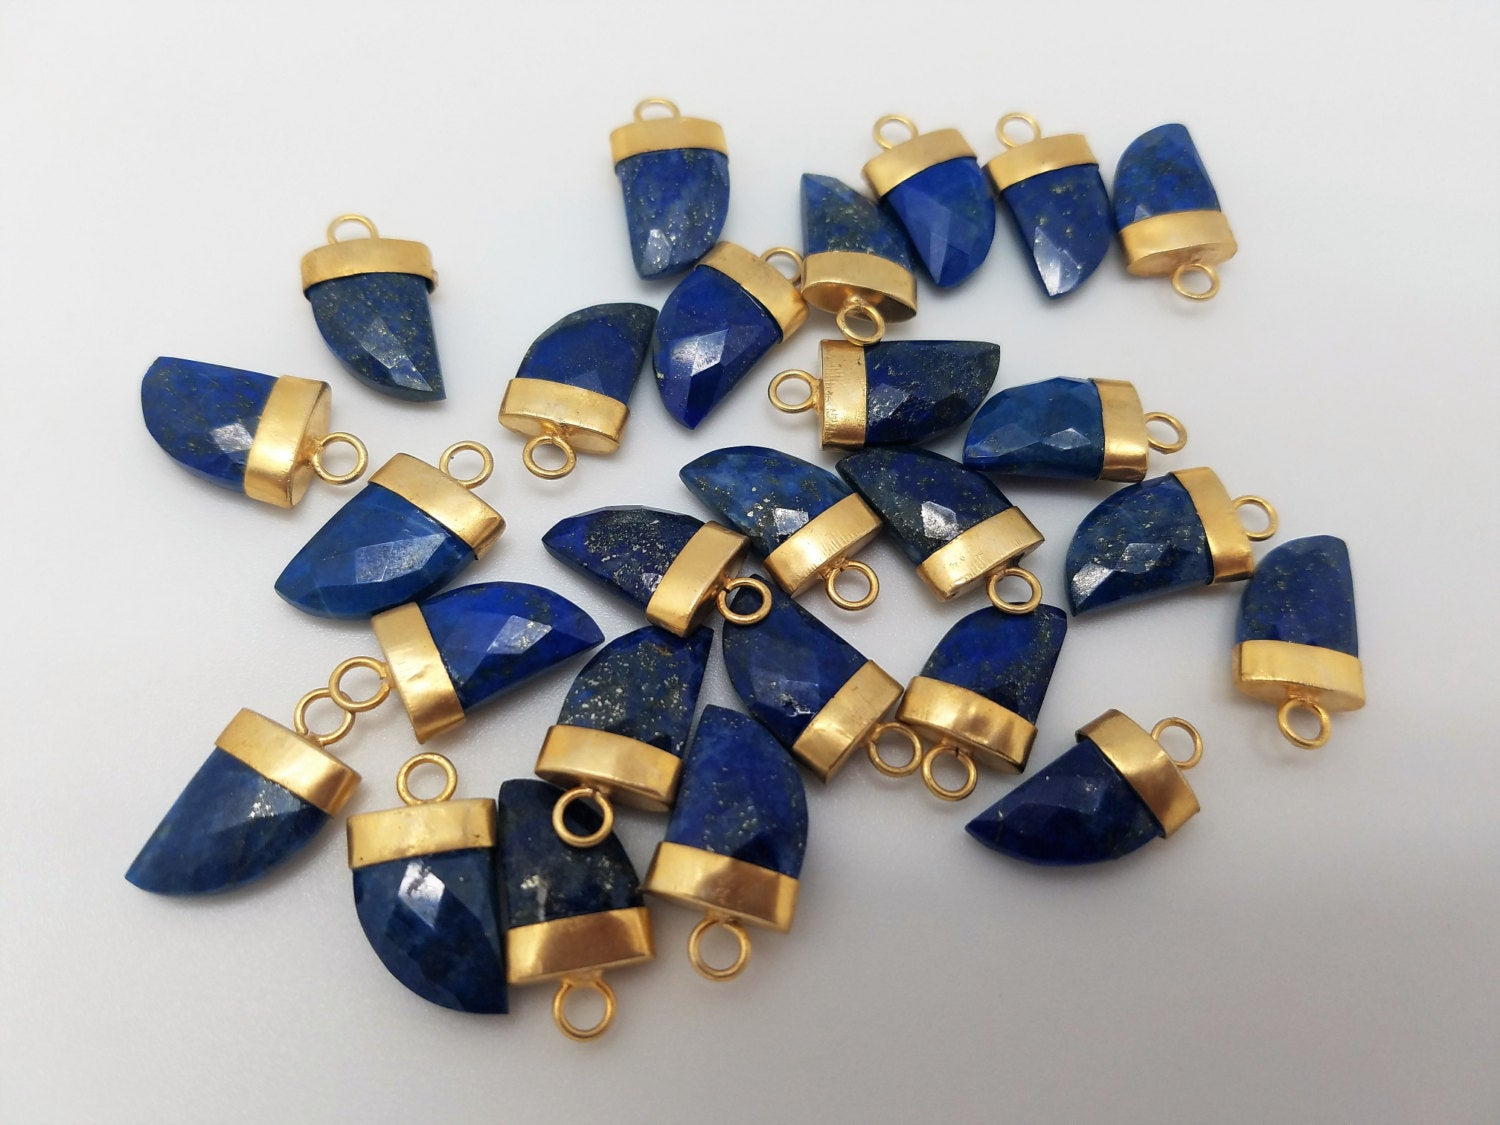 10 x 15mm Lapis Lazuli Horn Pendants w/Matte Gold Finish